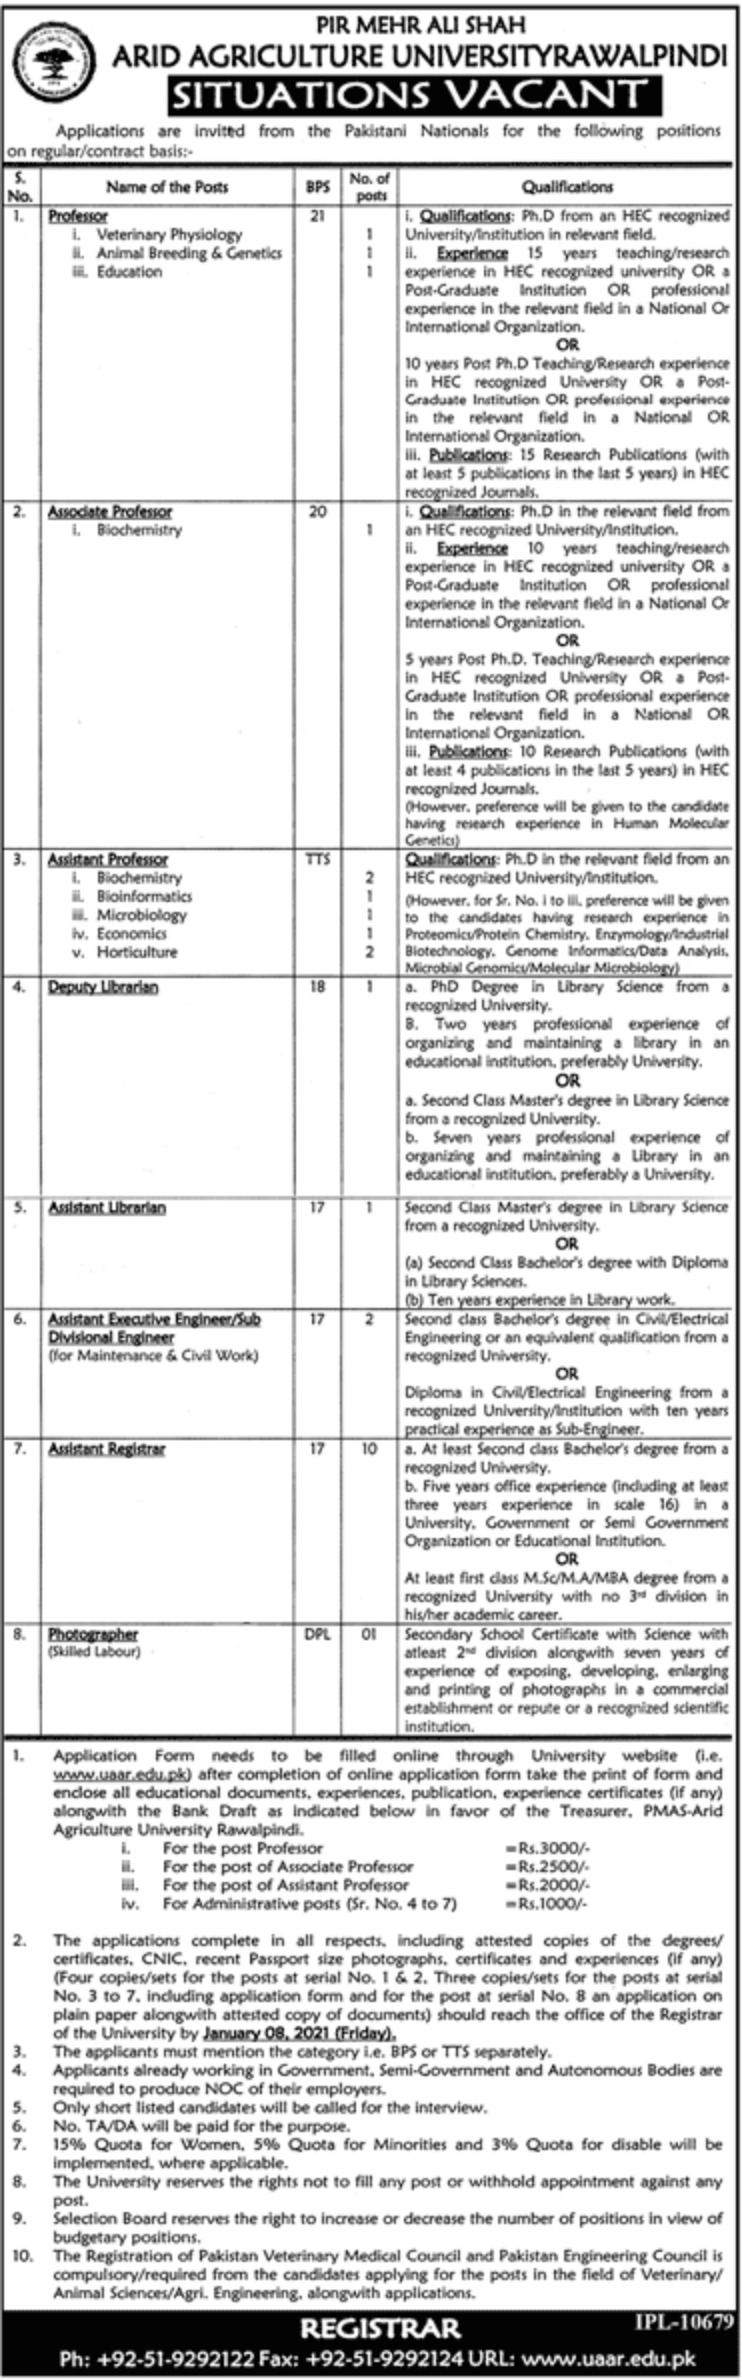 Arid Agriculture University Rawalpindi Jobs December 2020